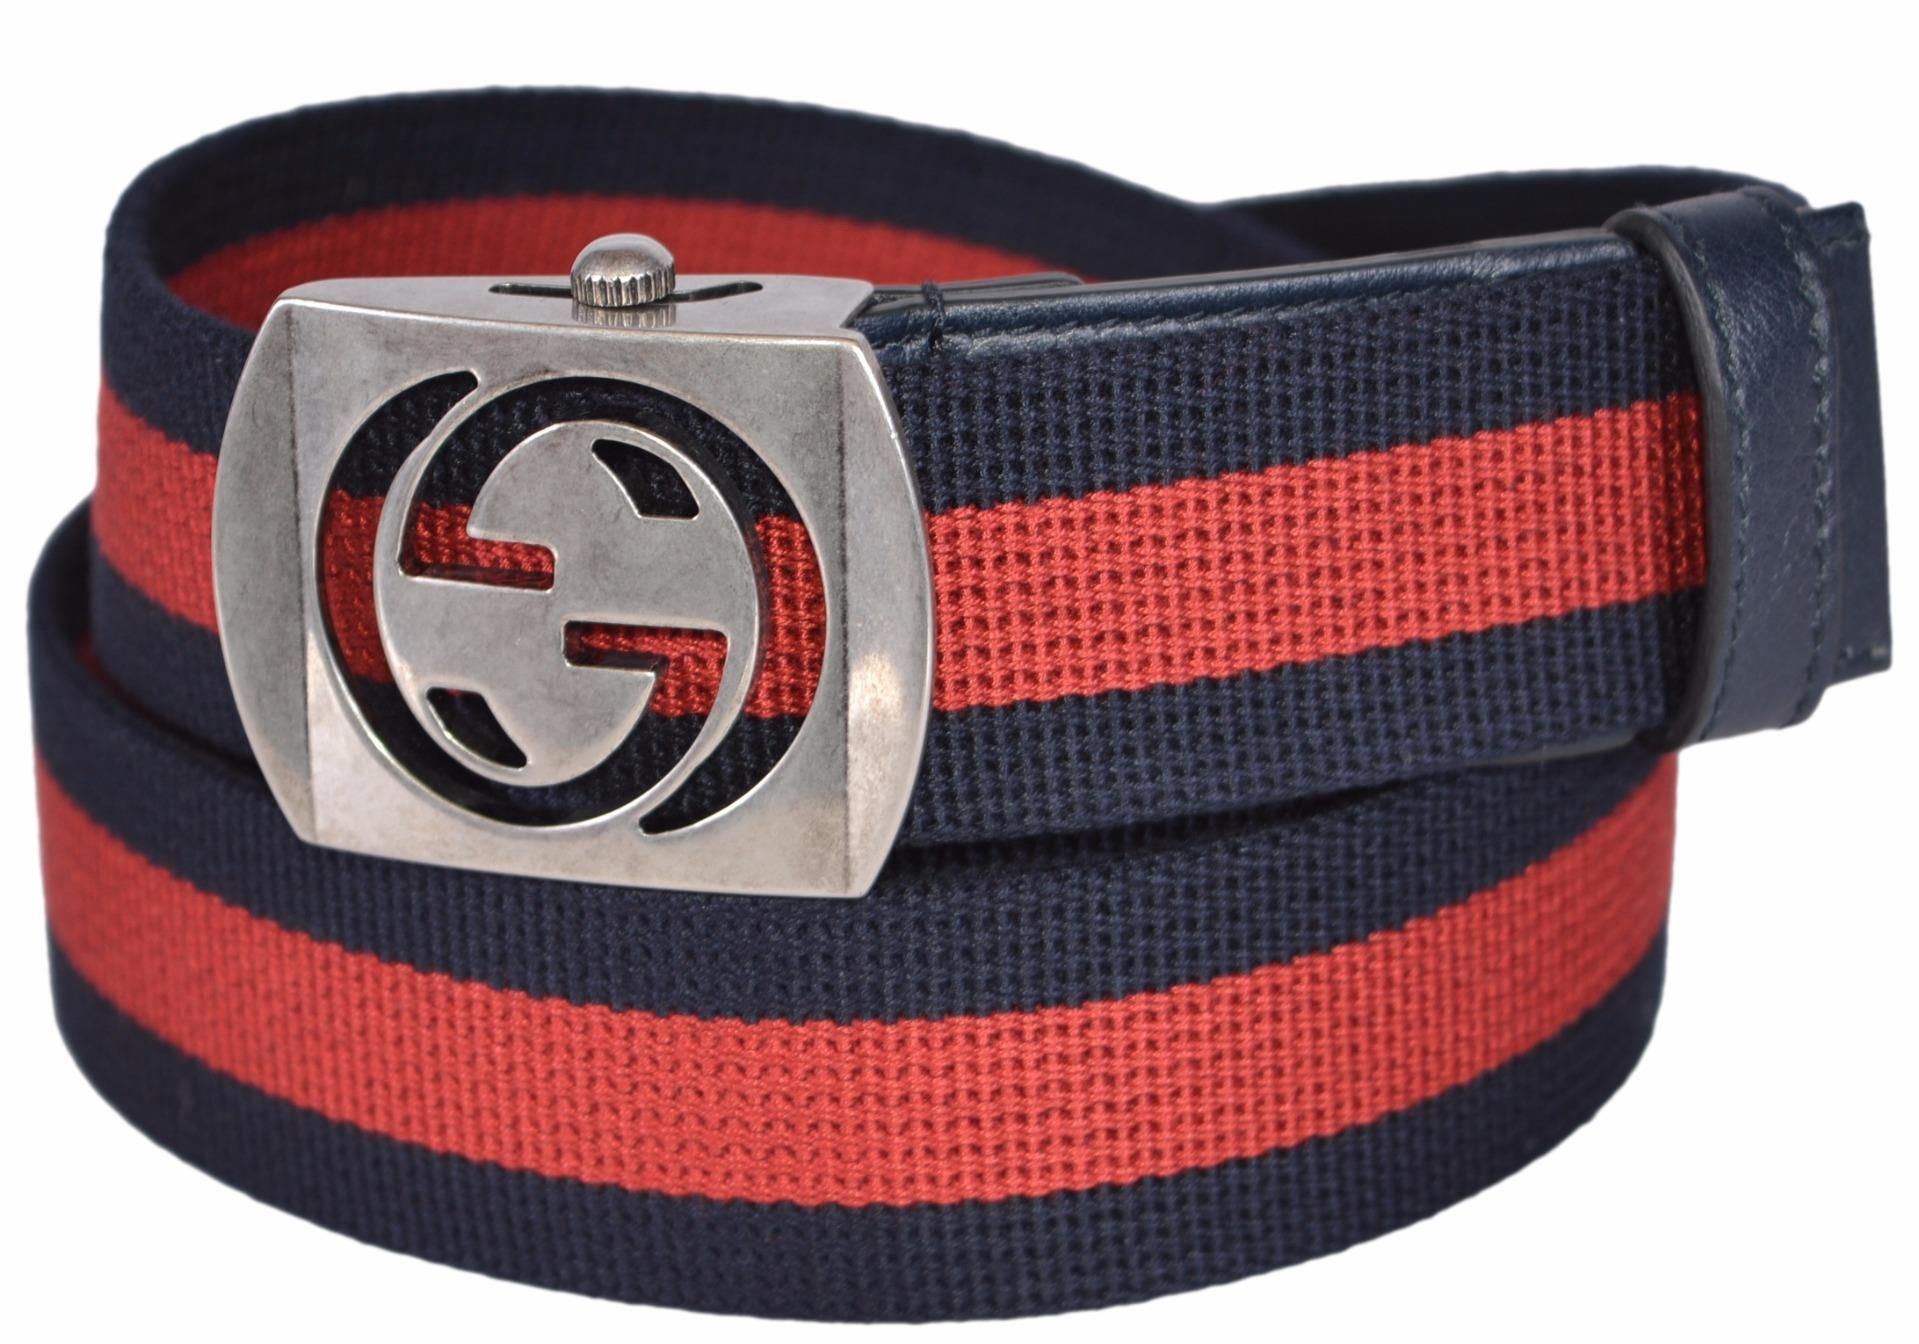 088e9a1d0 New Gucci Men's 387032 Blue Red Web Cut Out Palladium GG Belt 34 85. Free